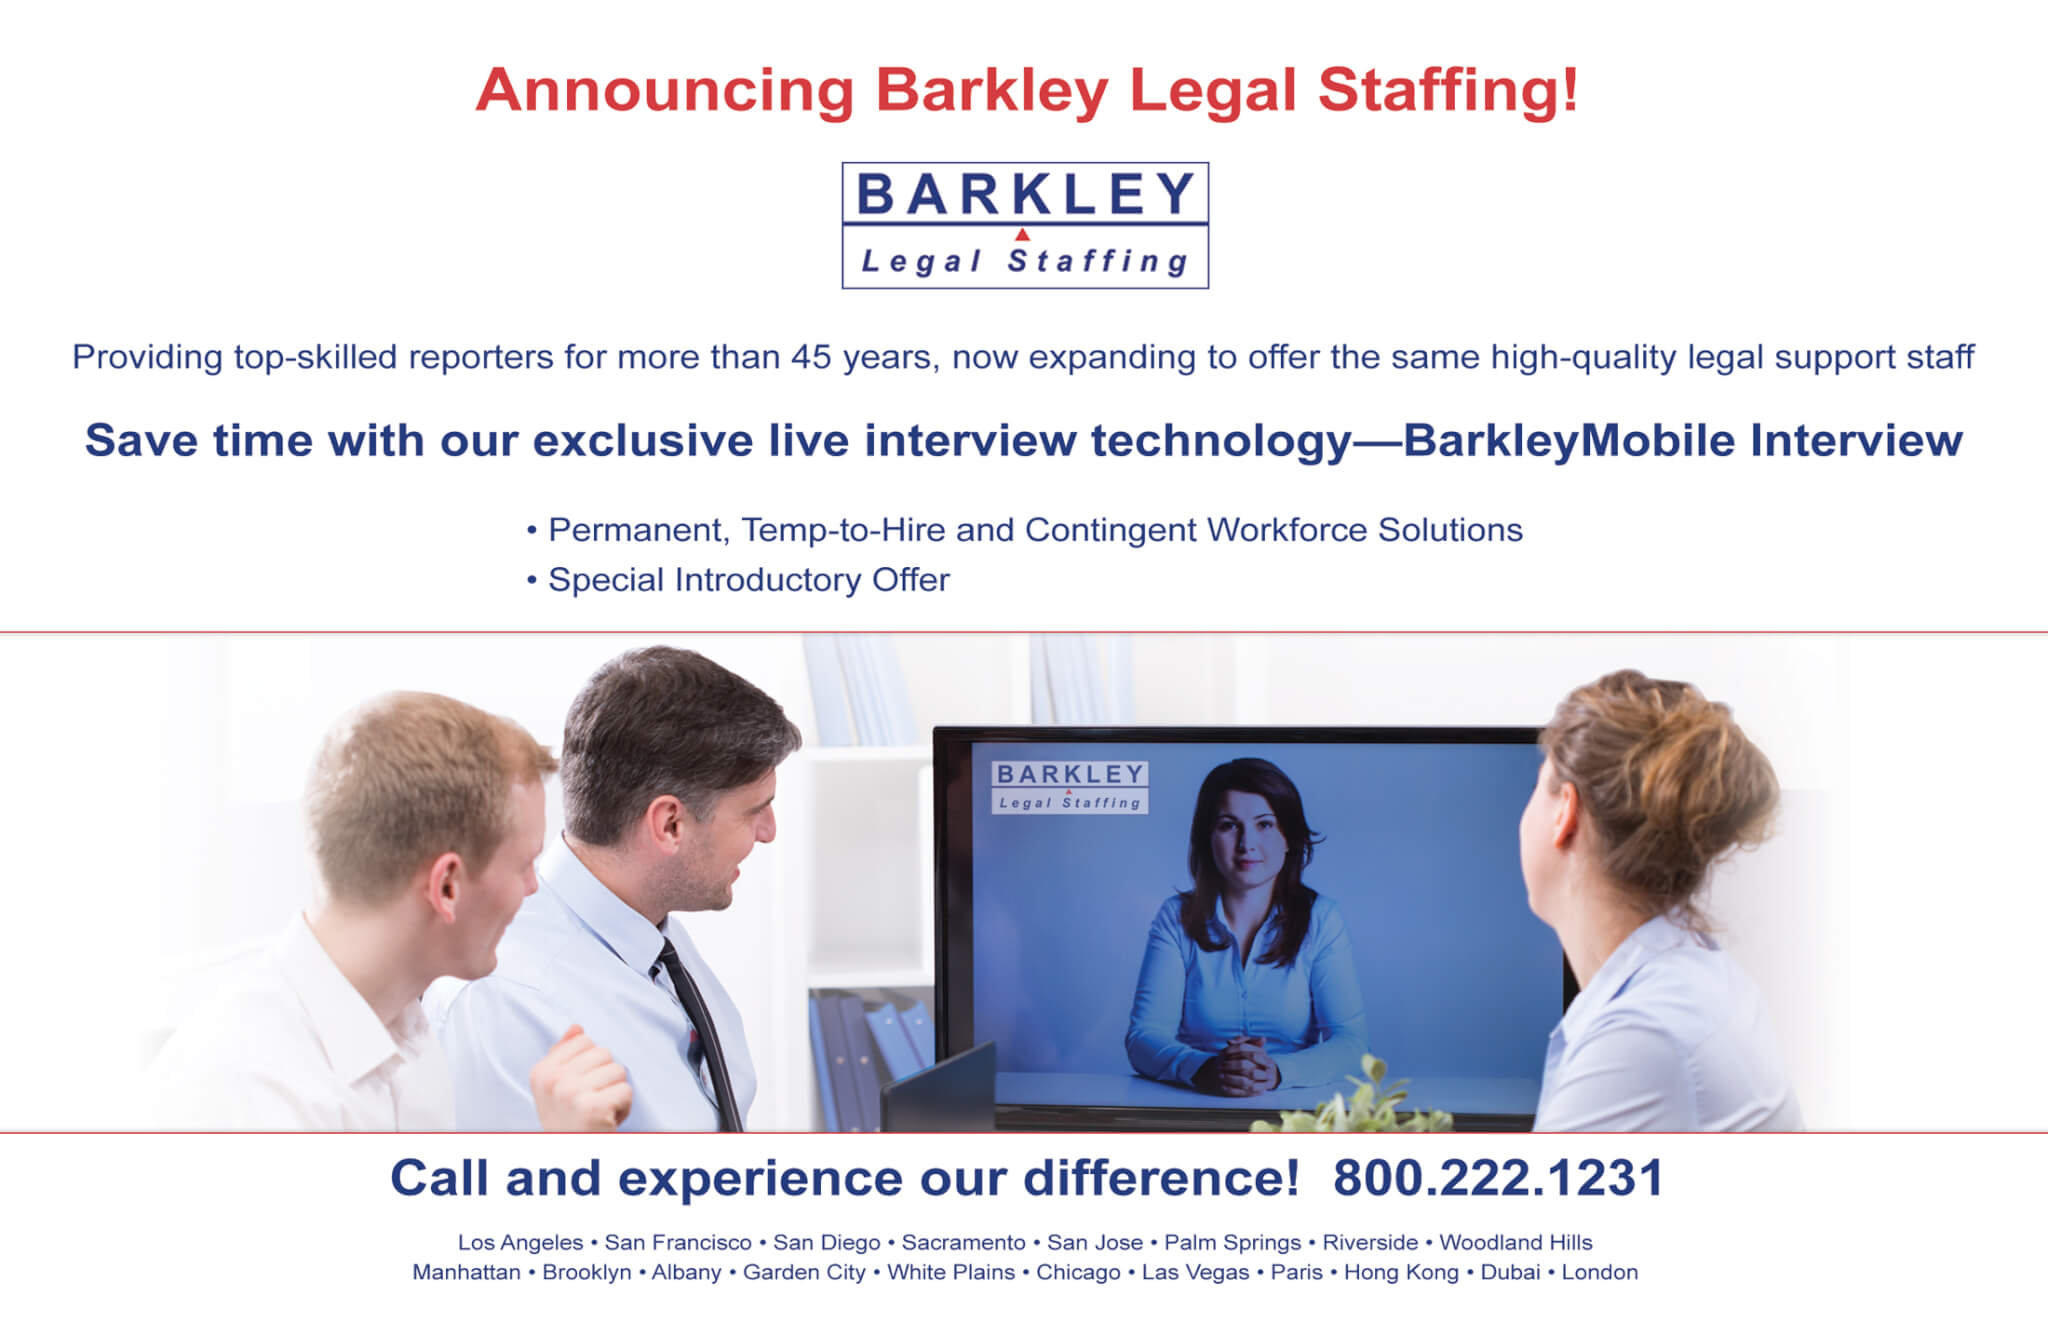 barkley-ad-card-Barkley-Legal-Staffing-55x85_postcard-v4-web-2